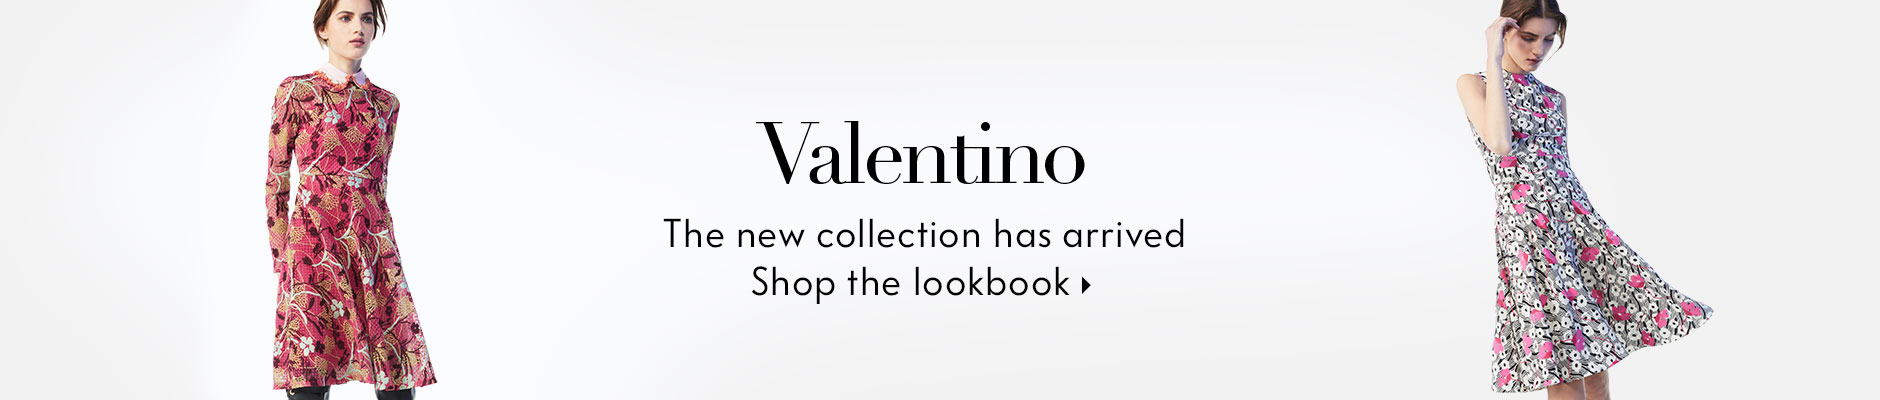 Valentino Lookbook